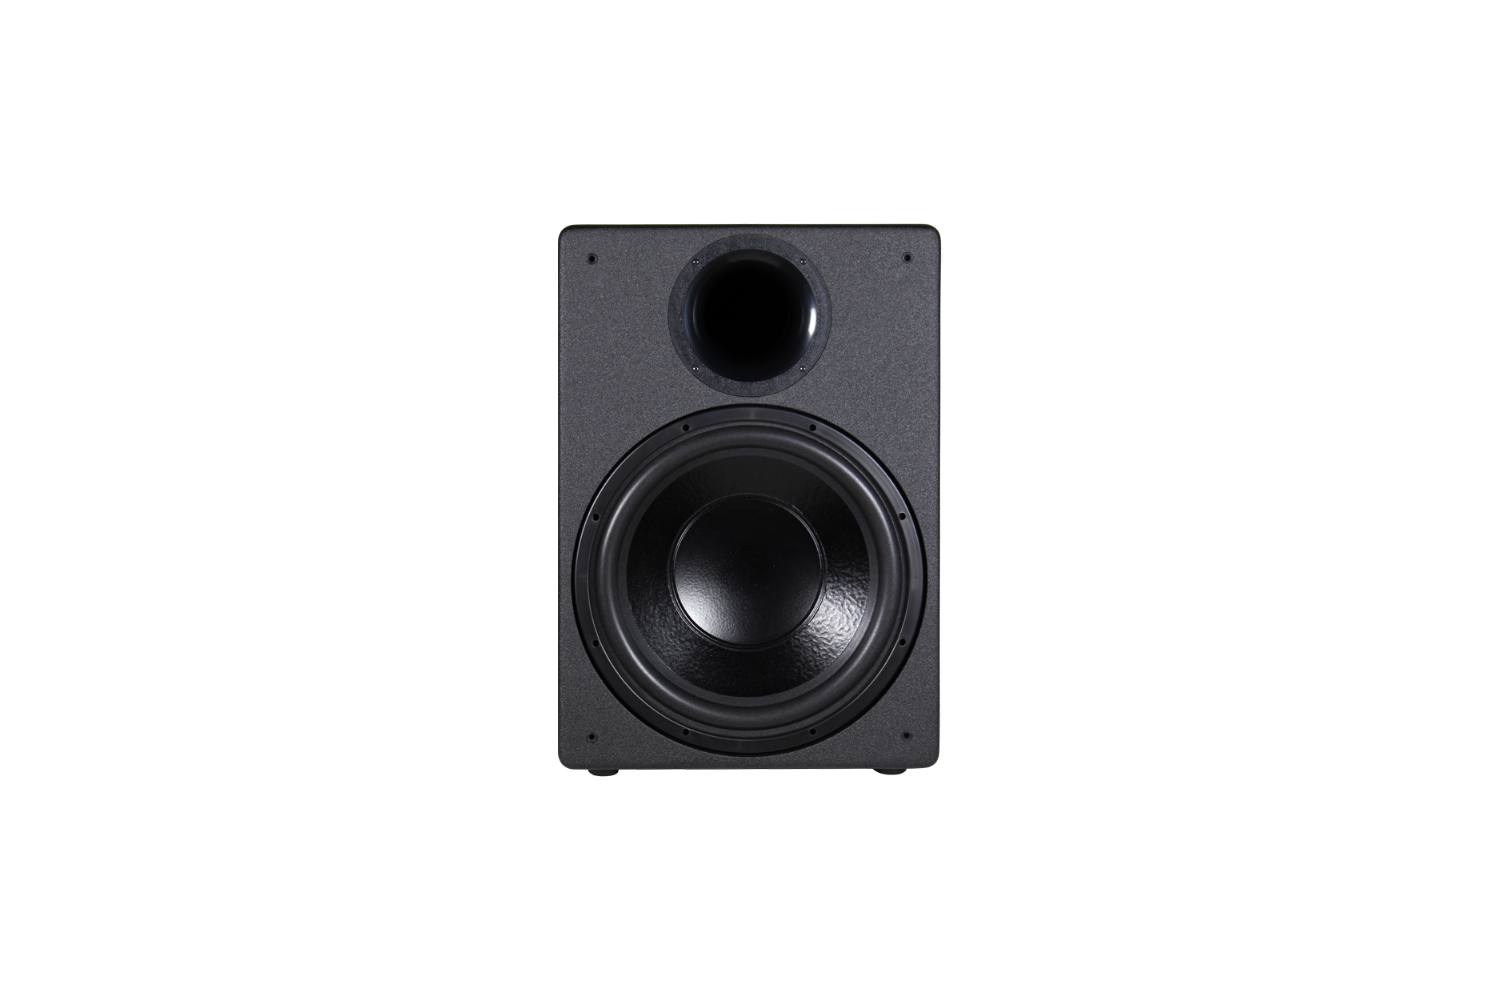 V1500 Home Theater Subwoofer Power Sound Audio Accurate Bass Tone Control